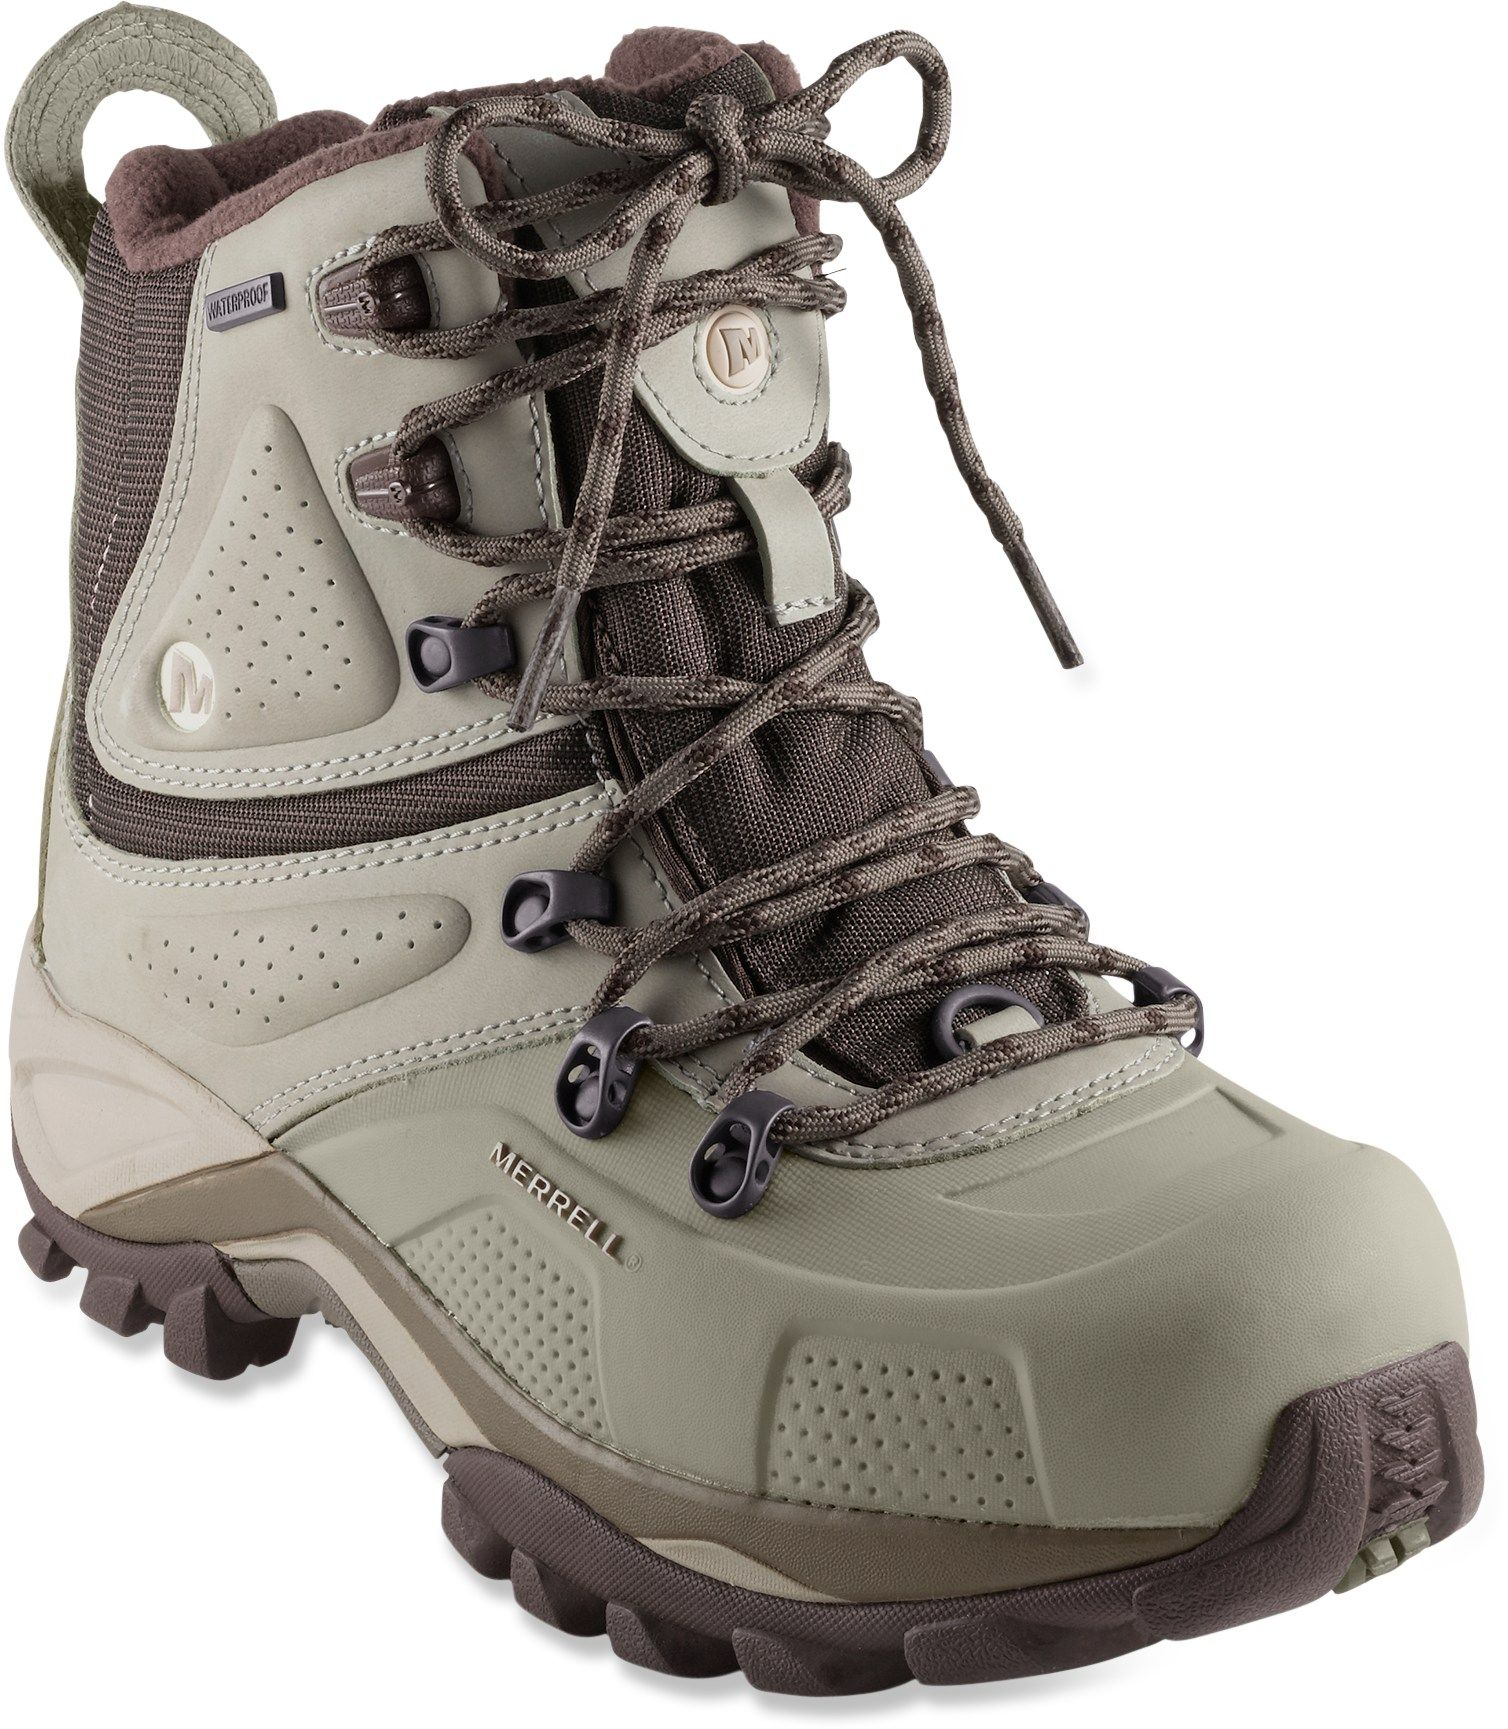 cheap for discount 4c187 9d25f Merrell Whiteout 8 Waterproof Winter Boots - Women s - Free Shipping at  REI.com